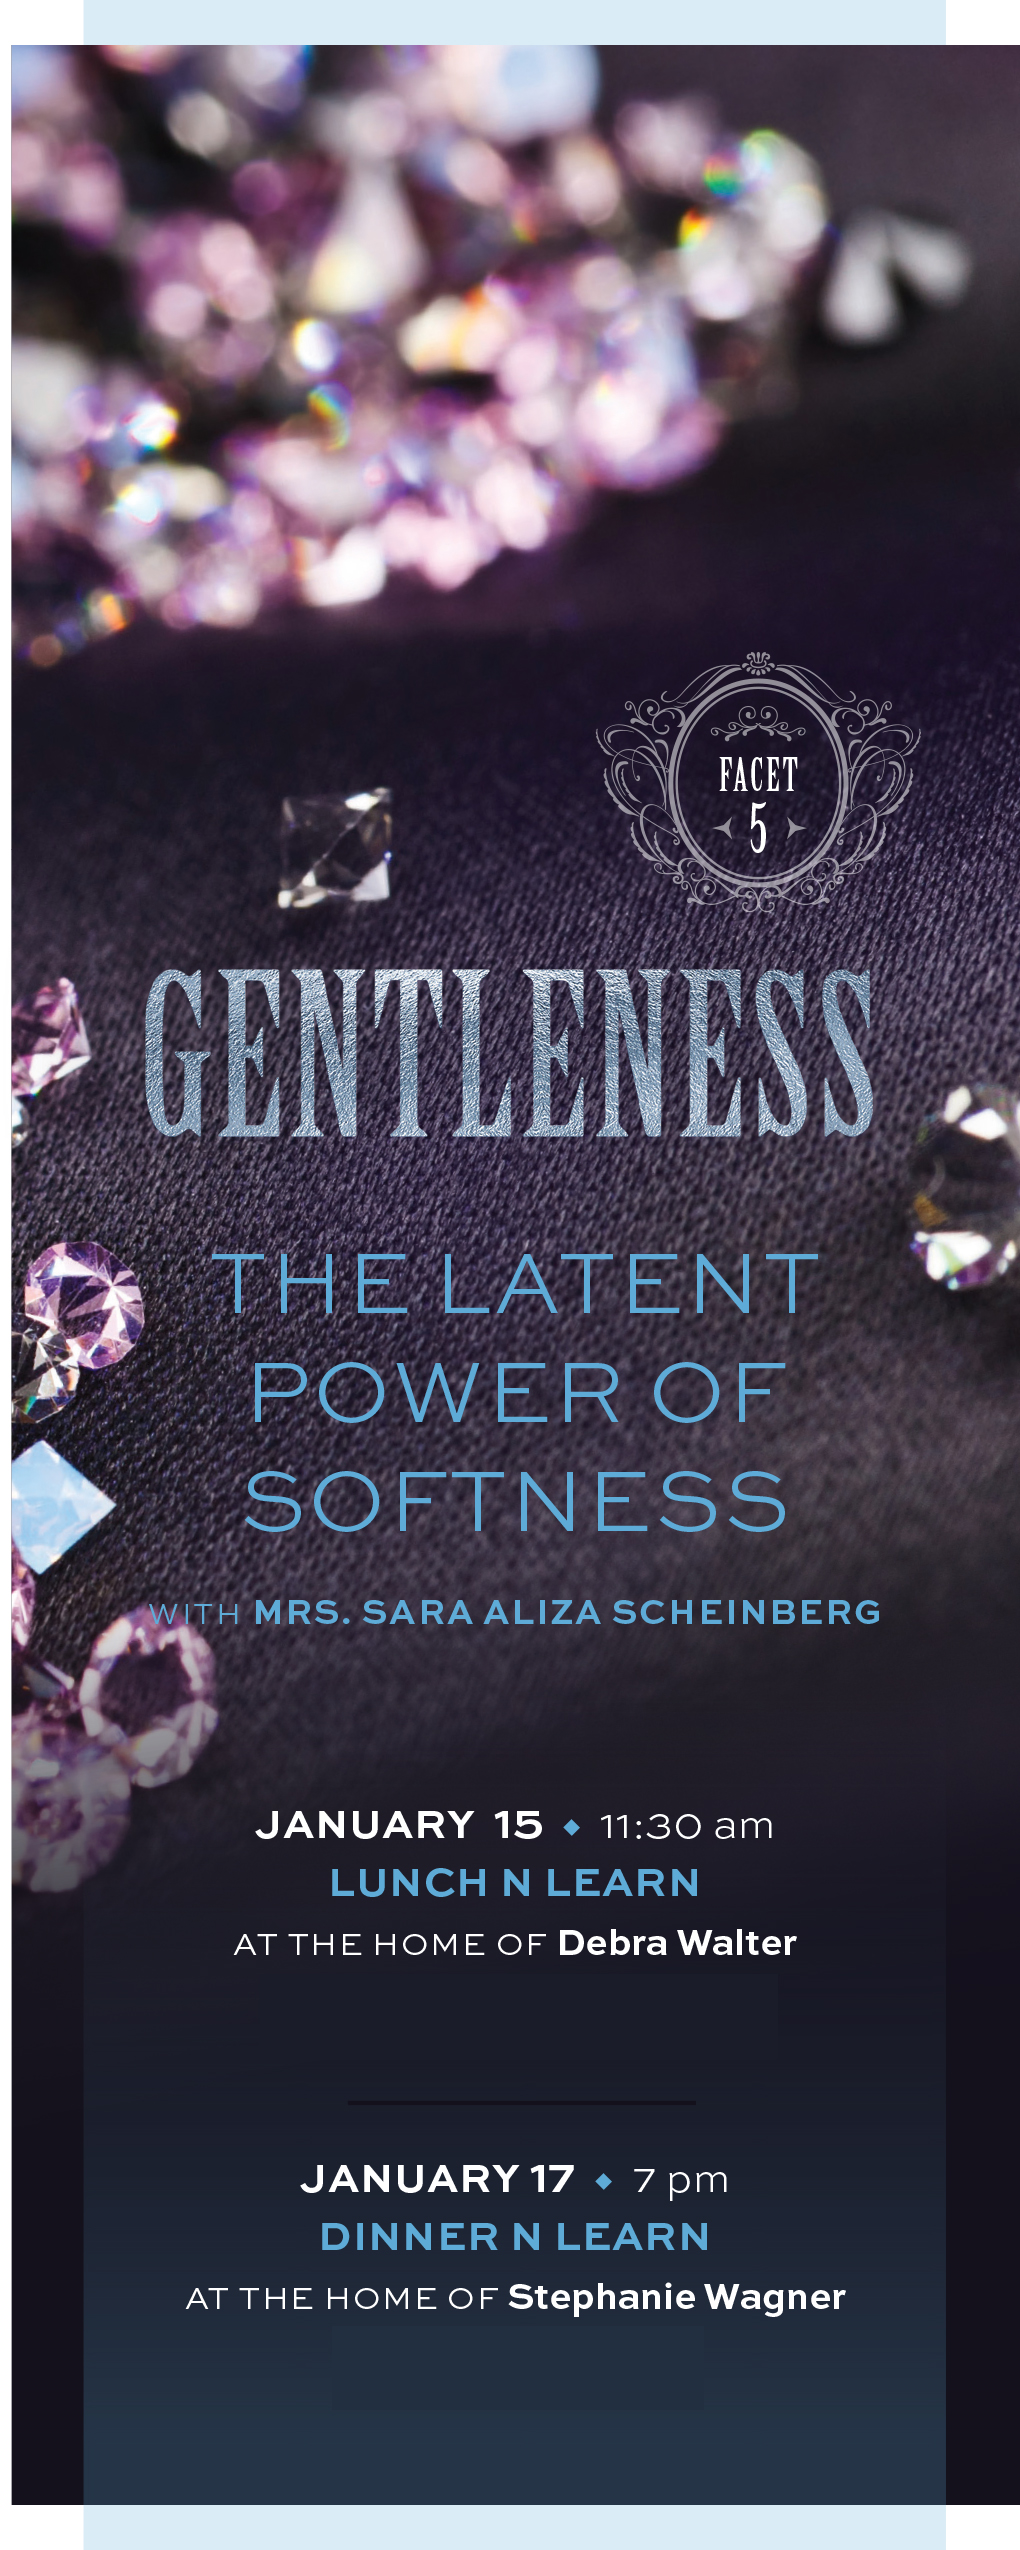 Facets - Gentleness: The Latent Power of Softness Dinner 'n Learn